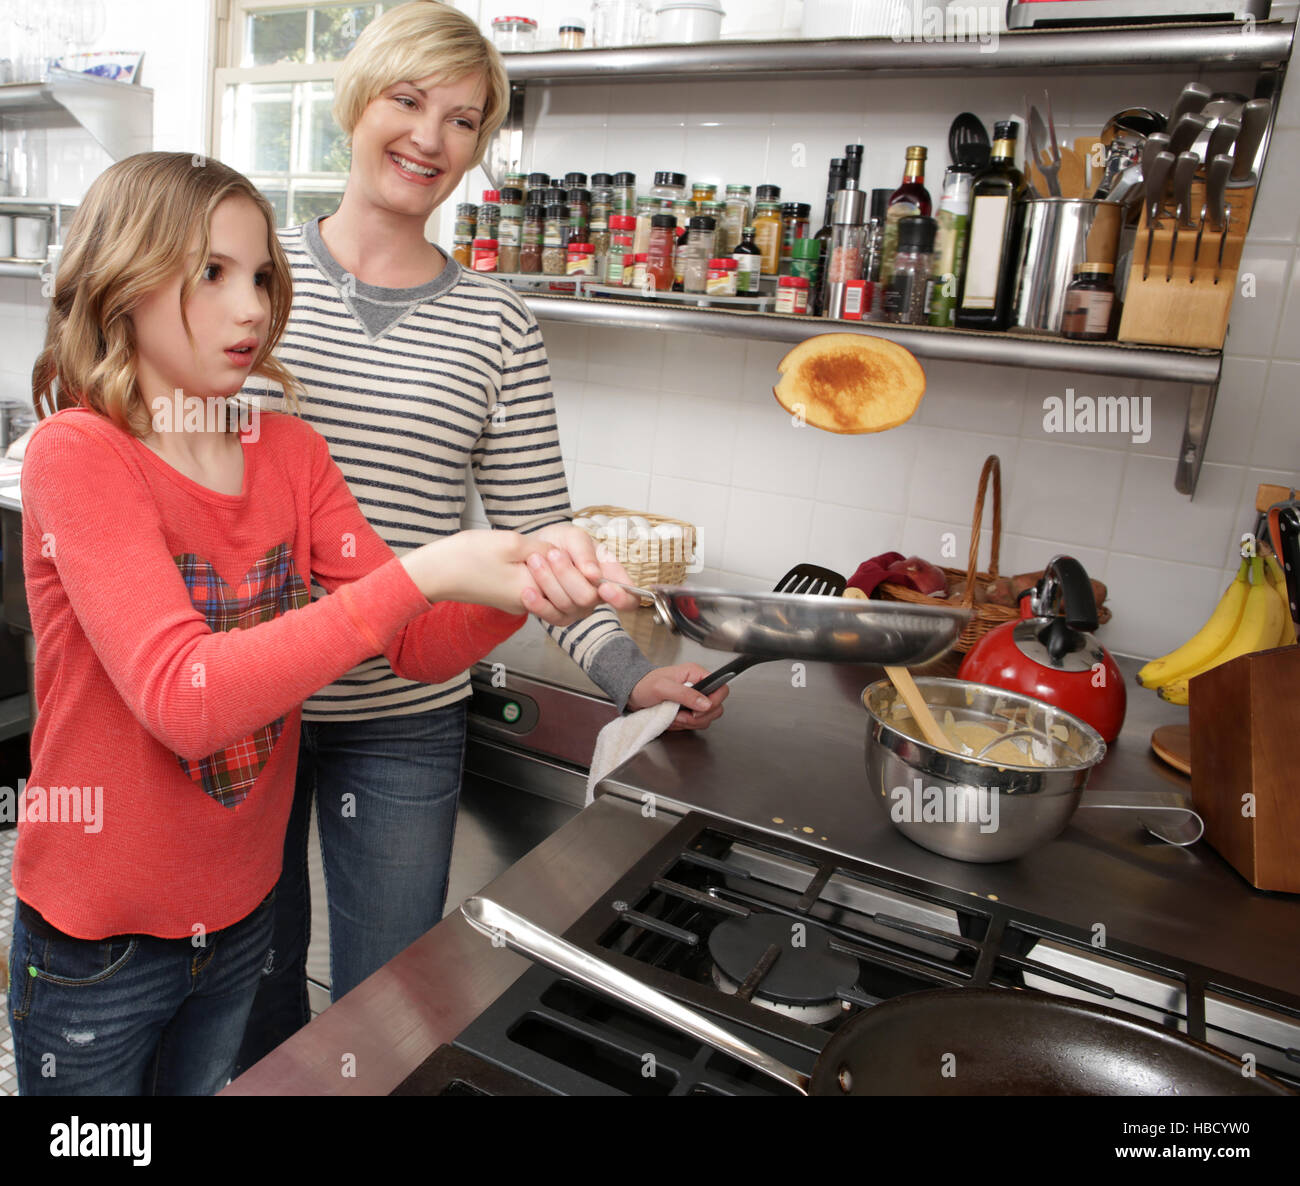 Mother and daughter in kitchen, daughter flipping pancake - Stock Image